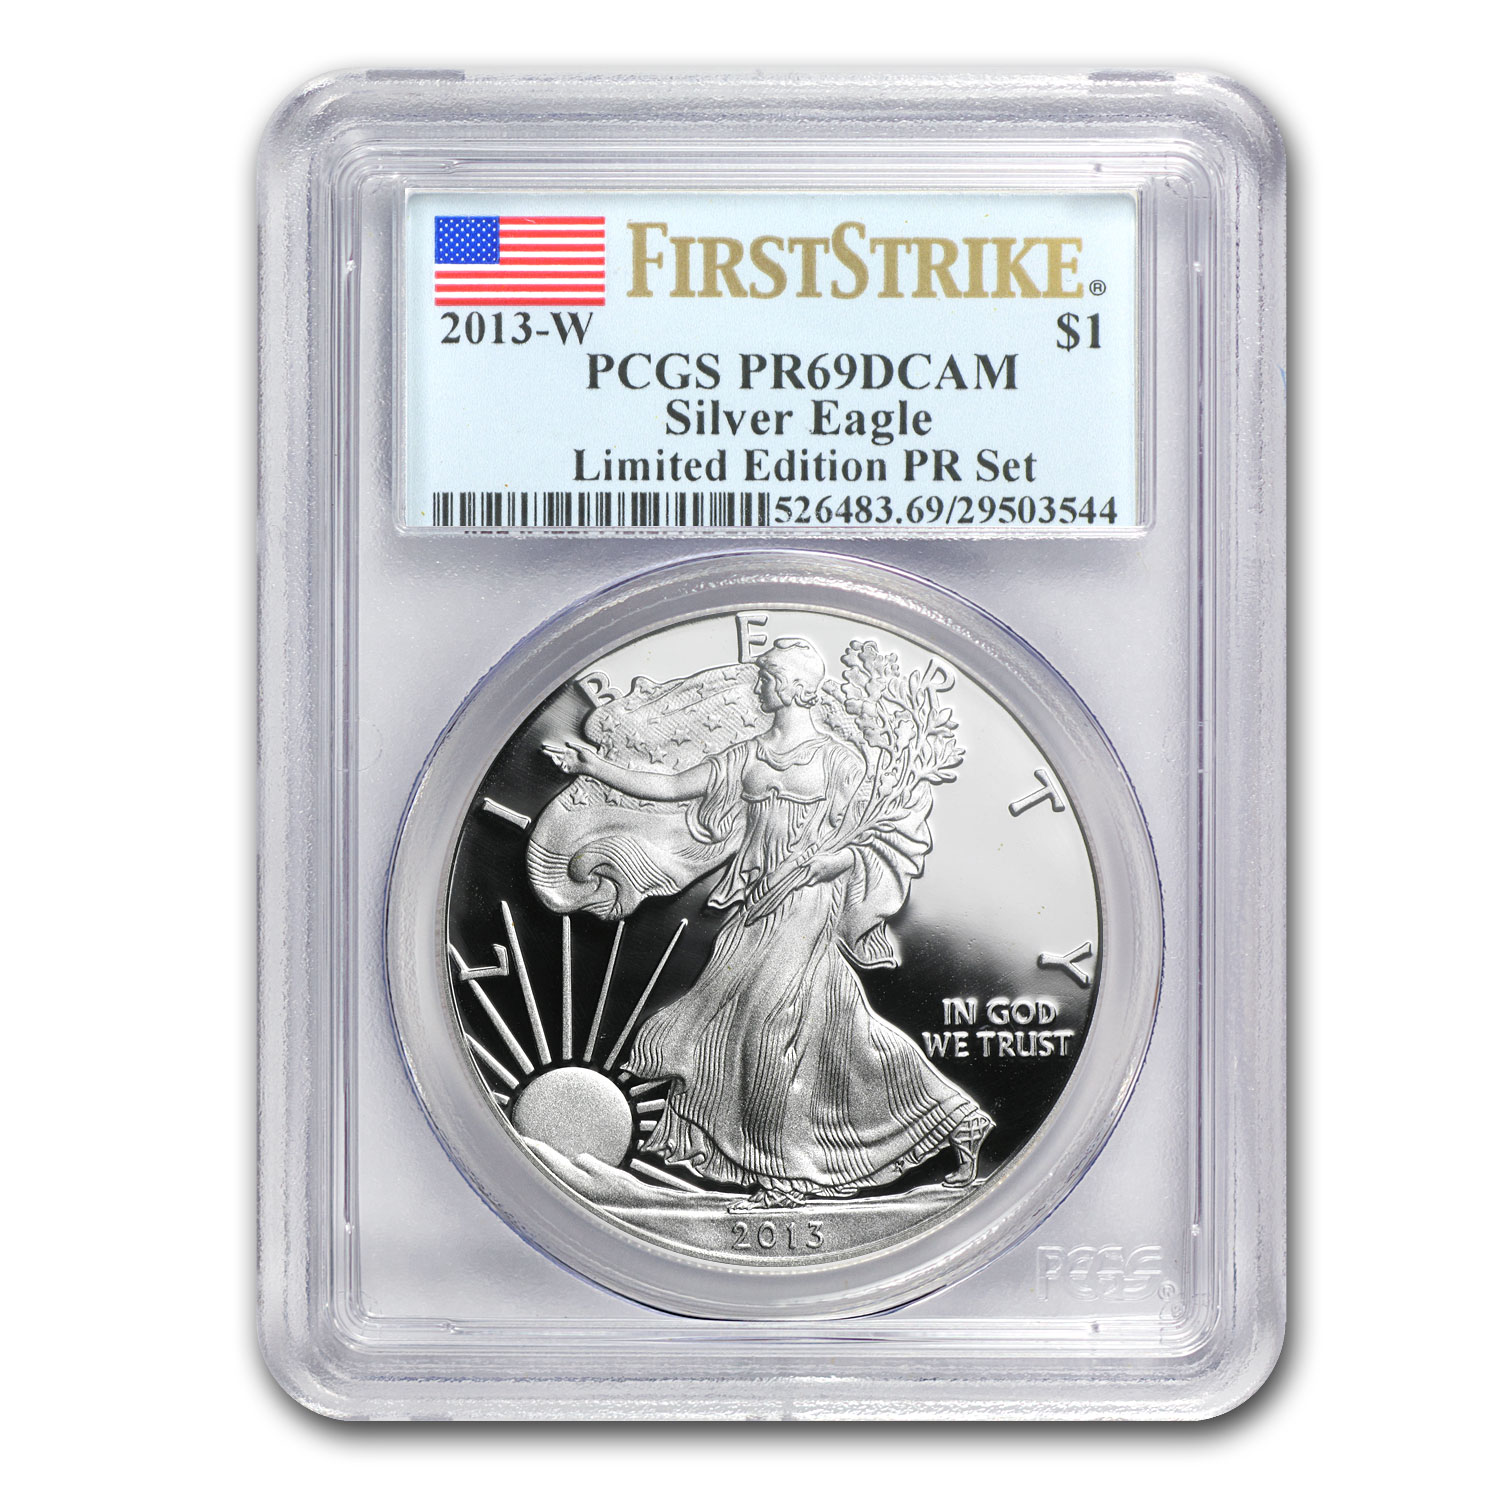 2013 US Mint Limited Edition Silver Eagle Proof Set PR-69 FS PCGS